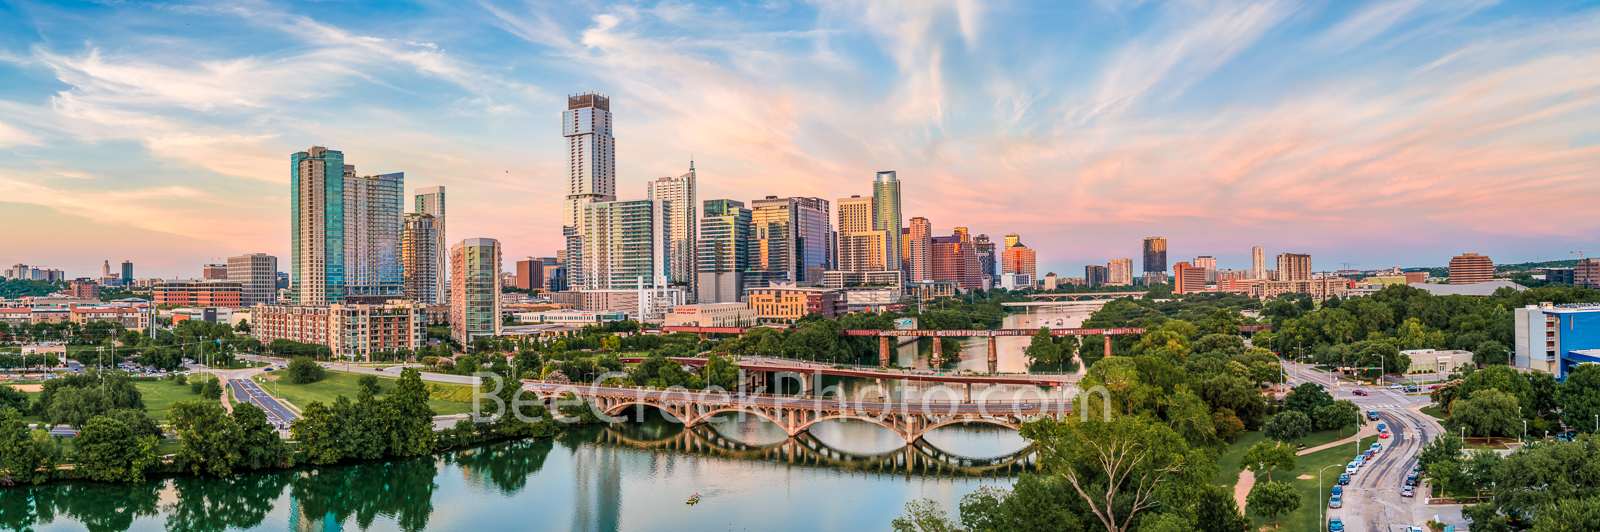 Austin skyline, aerial, drone, sunset, pics of texas, pics of austin, lamar bridge, first st. bridge, lady bird lake, clouds, pink, orange, sky, clouds, hike and bike trail, colorado river, architectu